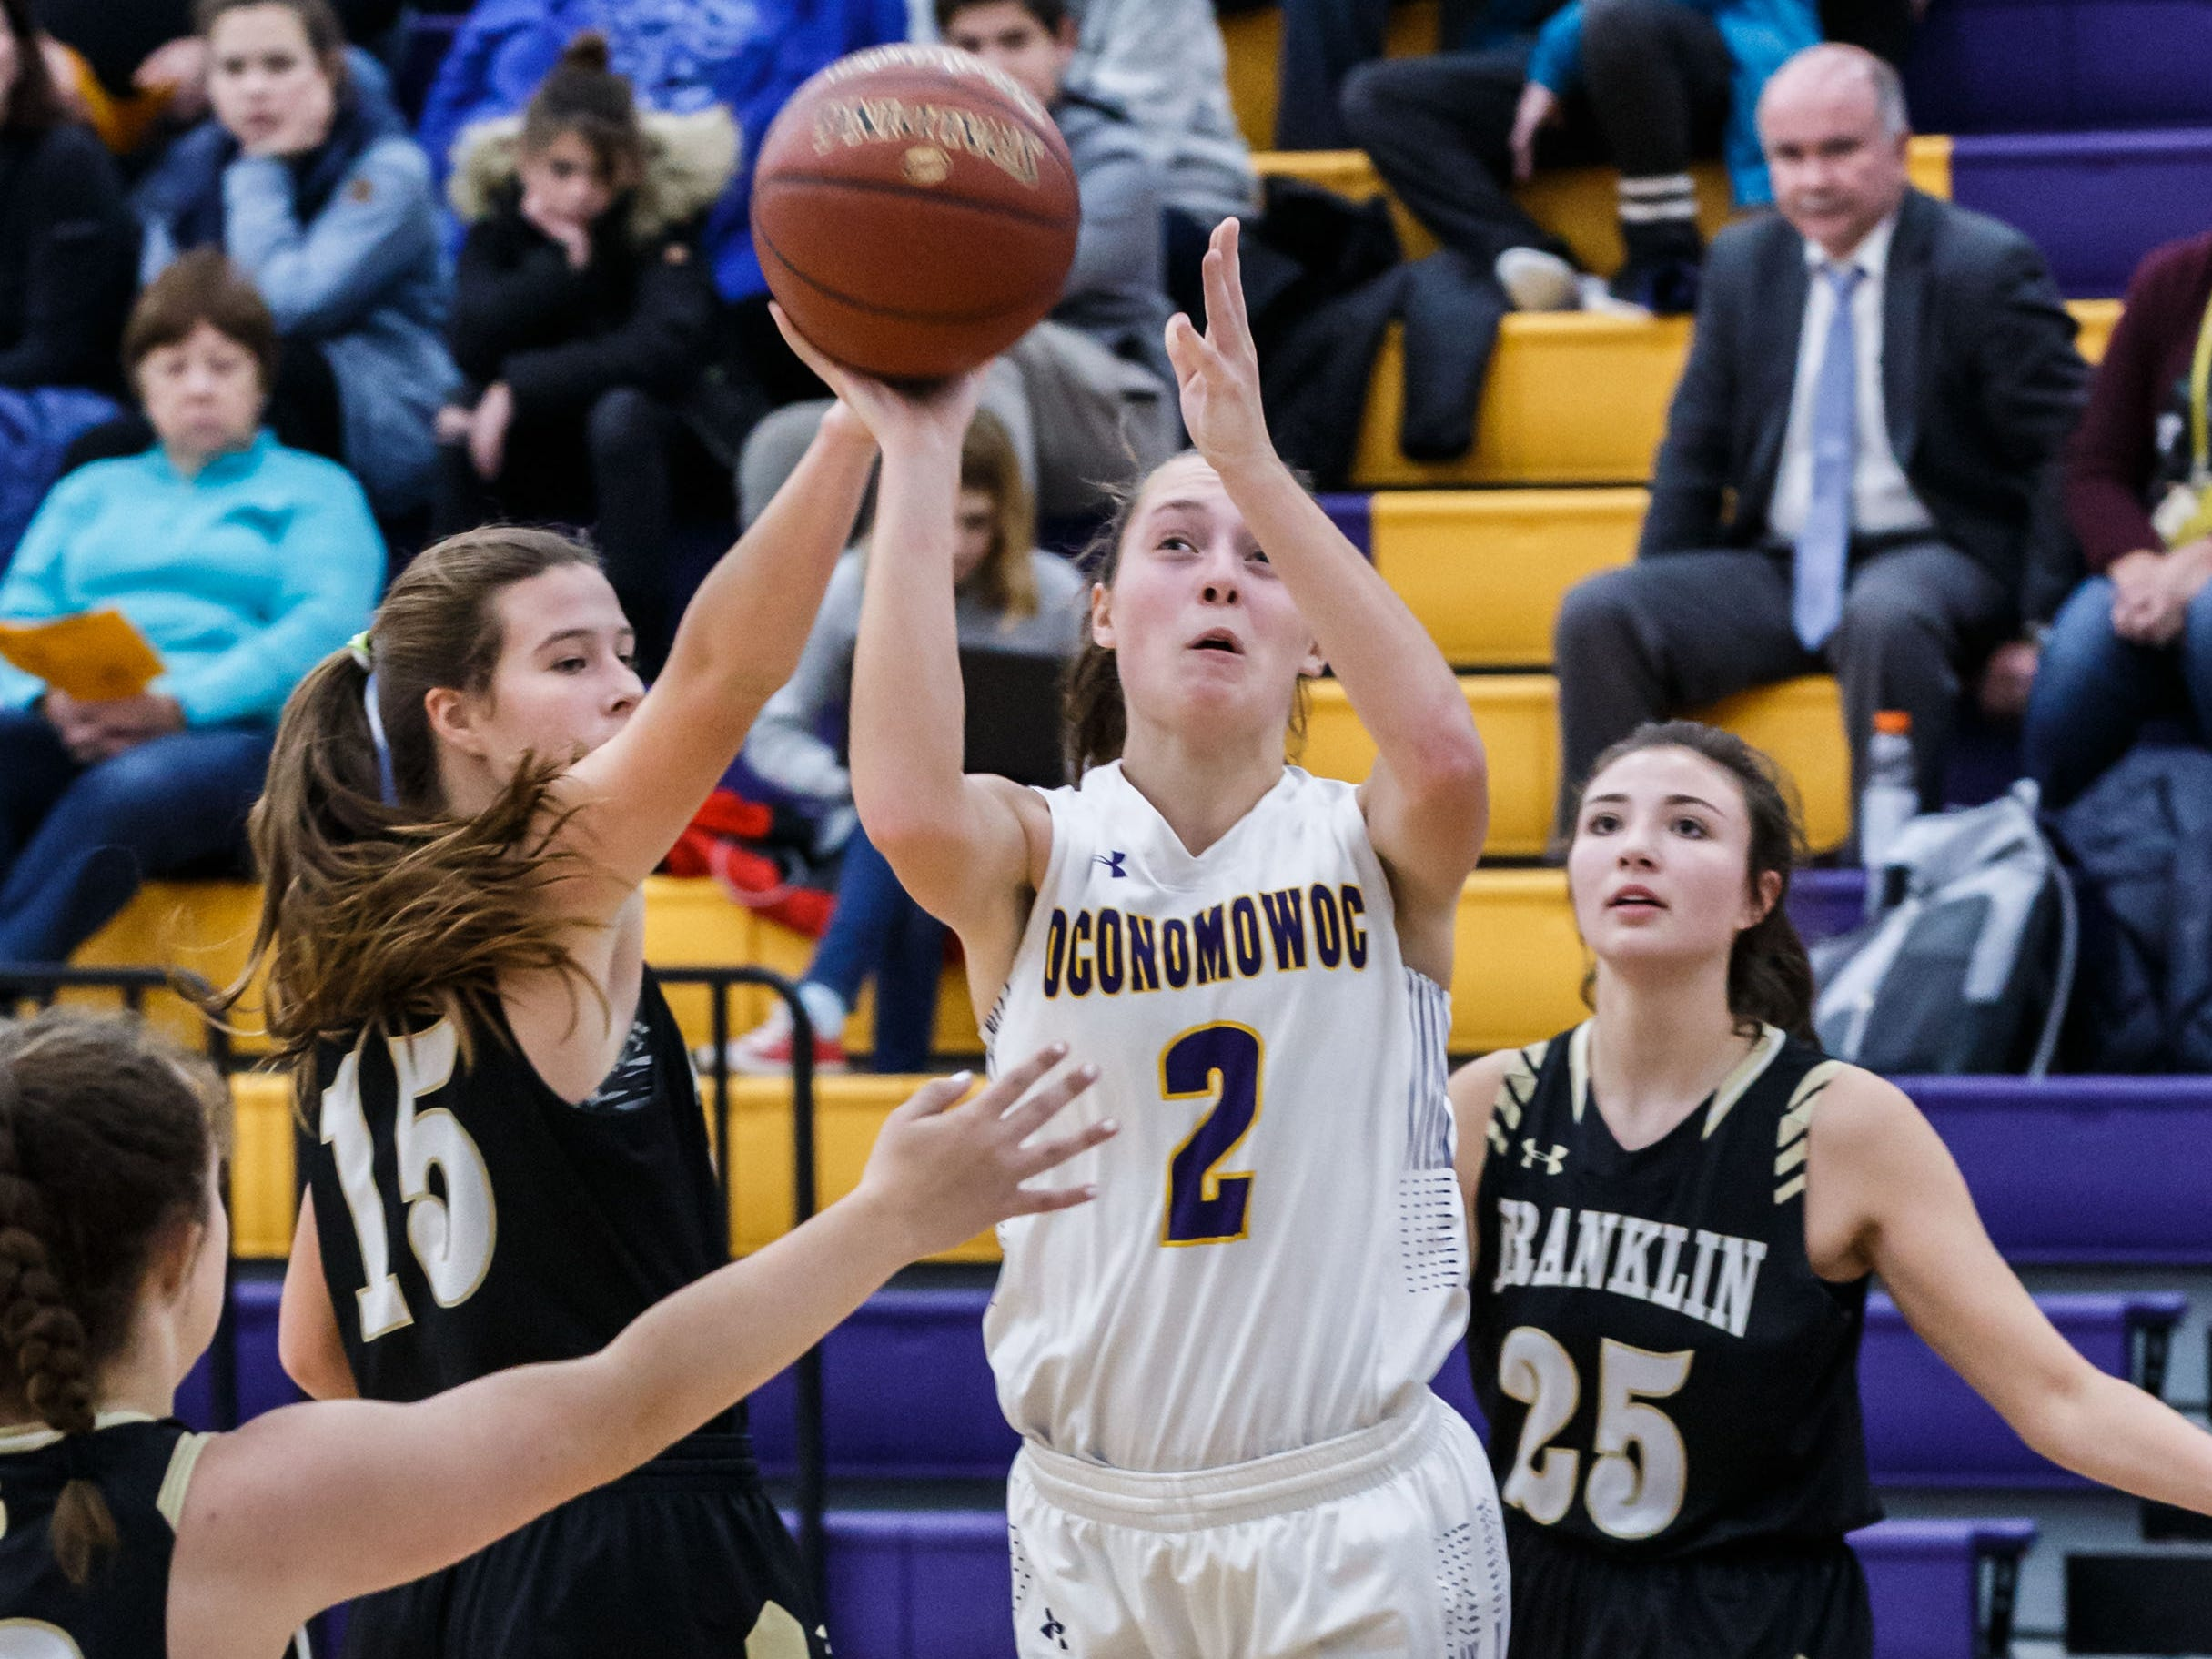 Oconomowoc sophomore Elizabeth Cleary (2) takes flight for a shot during the game at home against Franklin on Monday, Nov. 19, 2018.